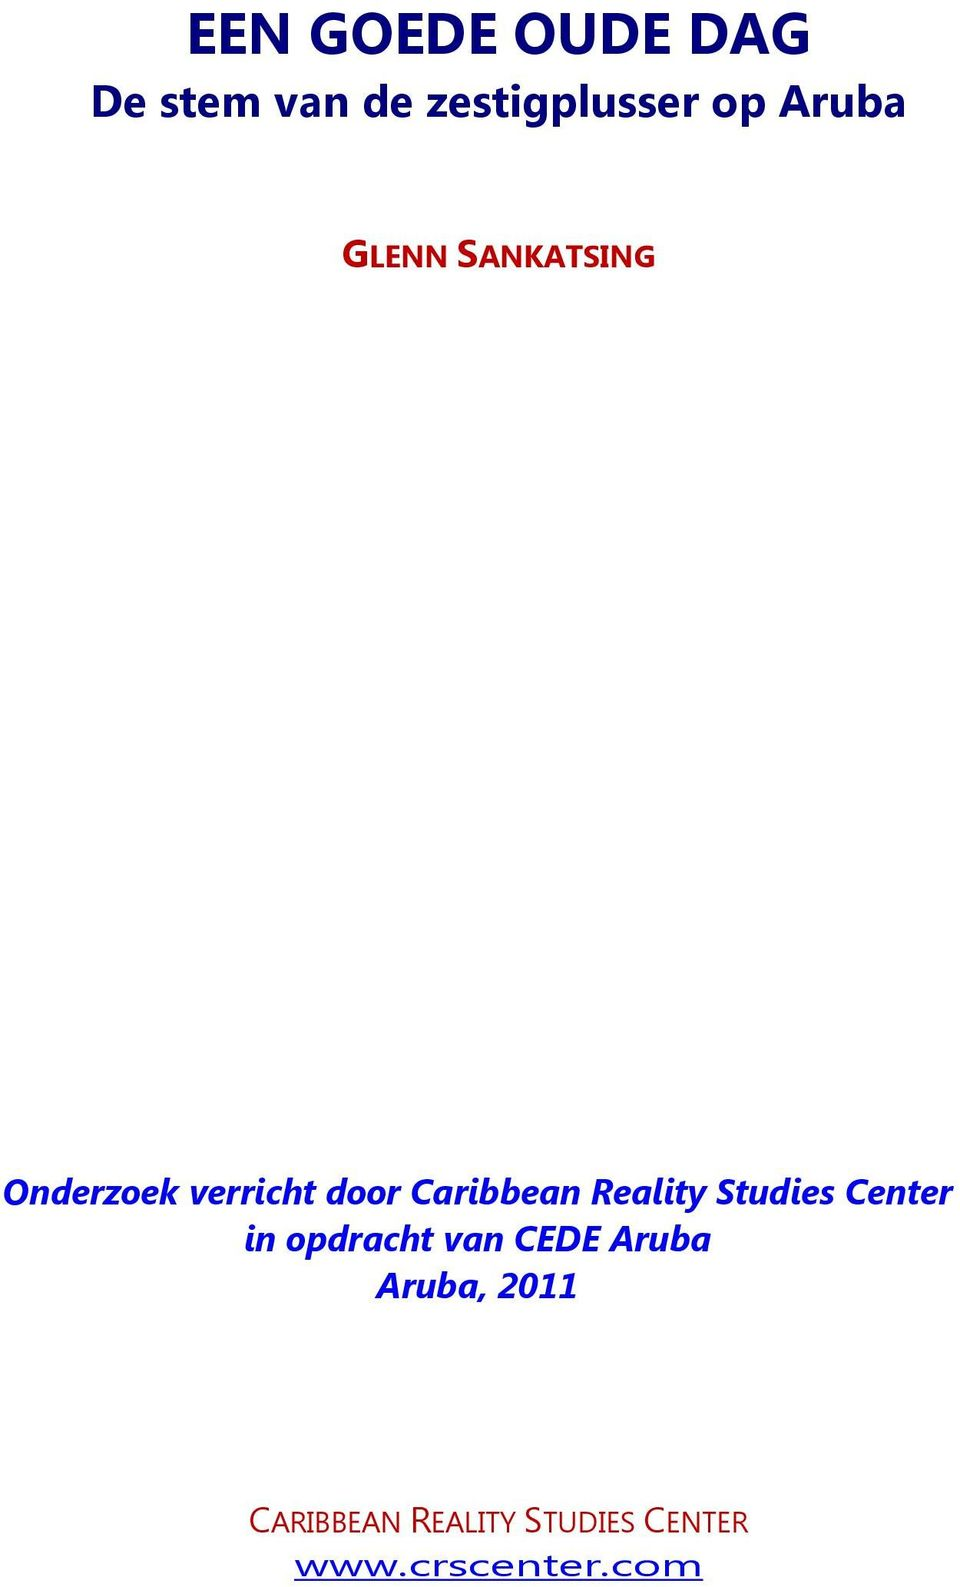 Caribbean Reality Studies Center in opdracht van CEDE